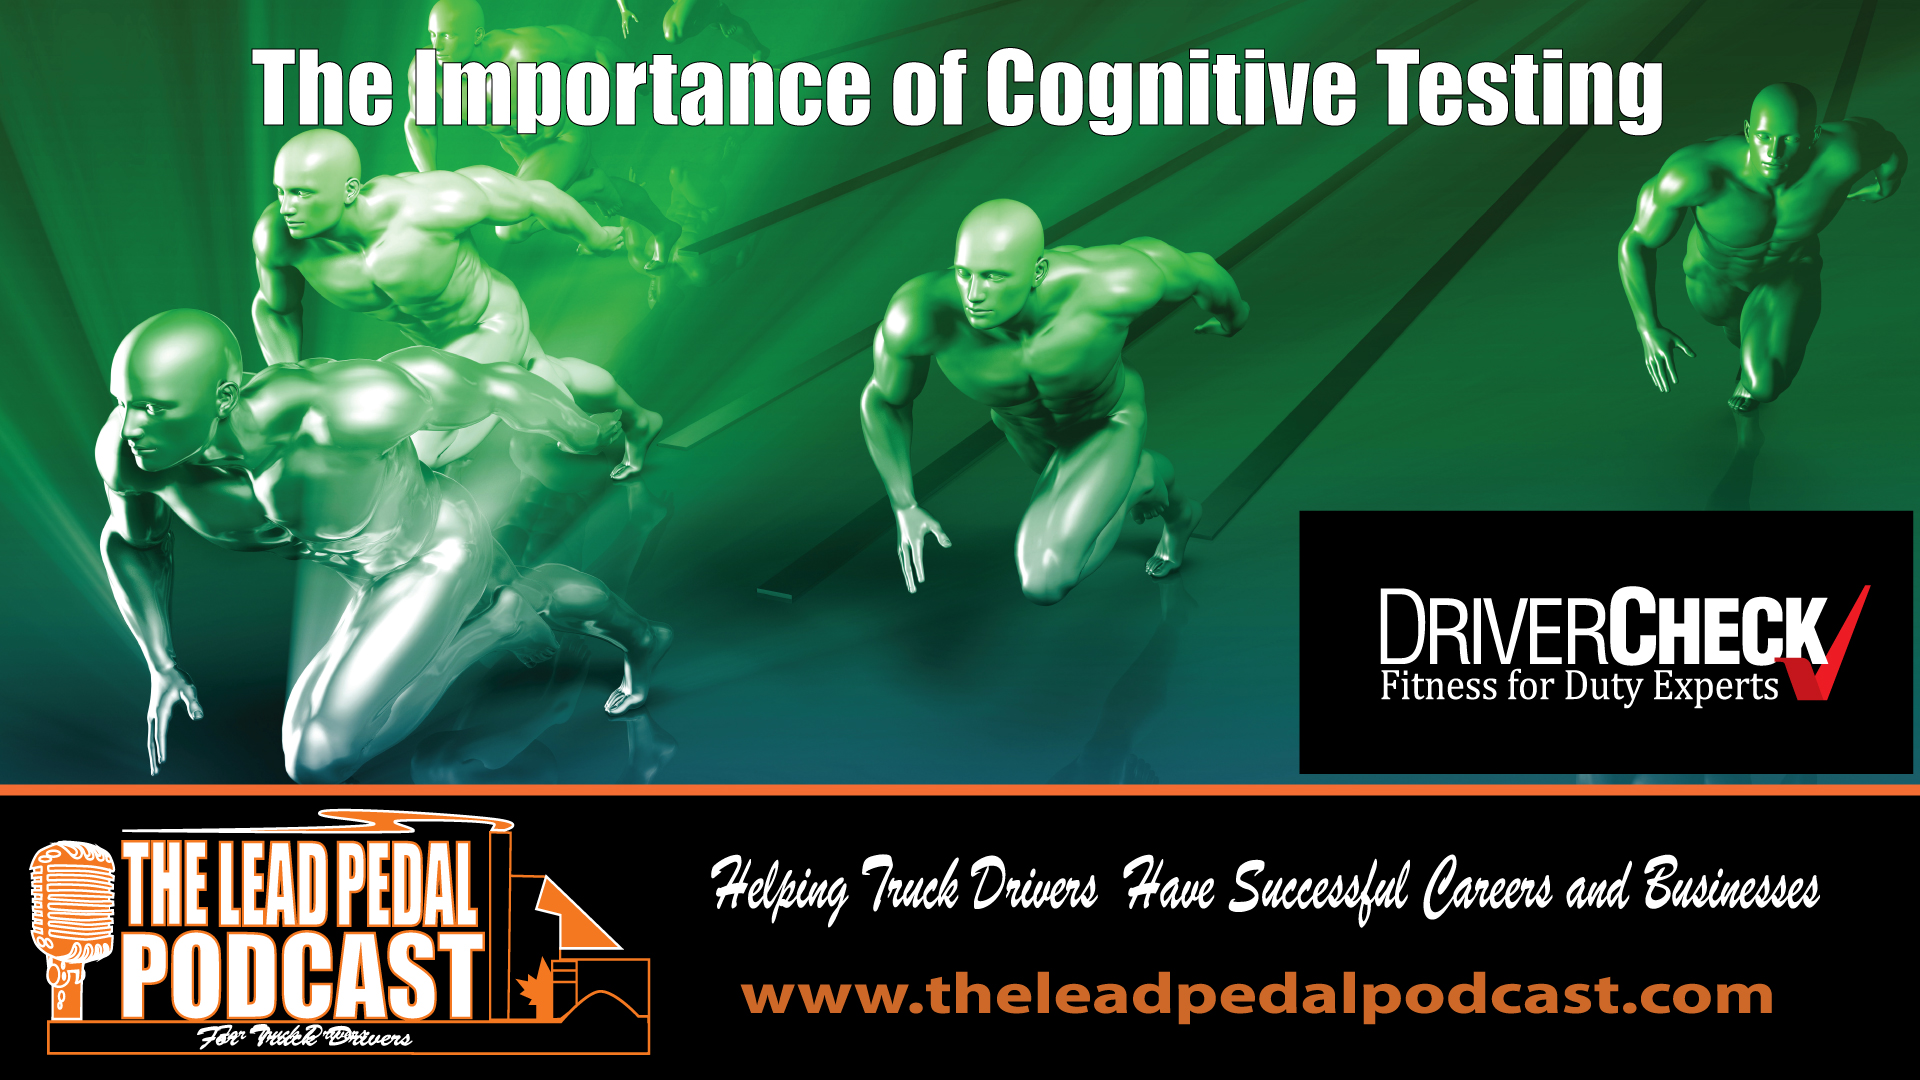 Cognitive Testing with DriverCheck